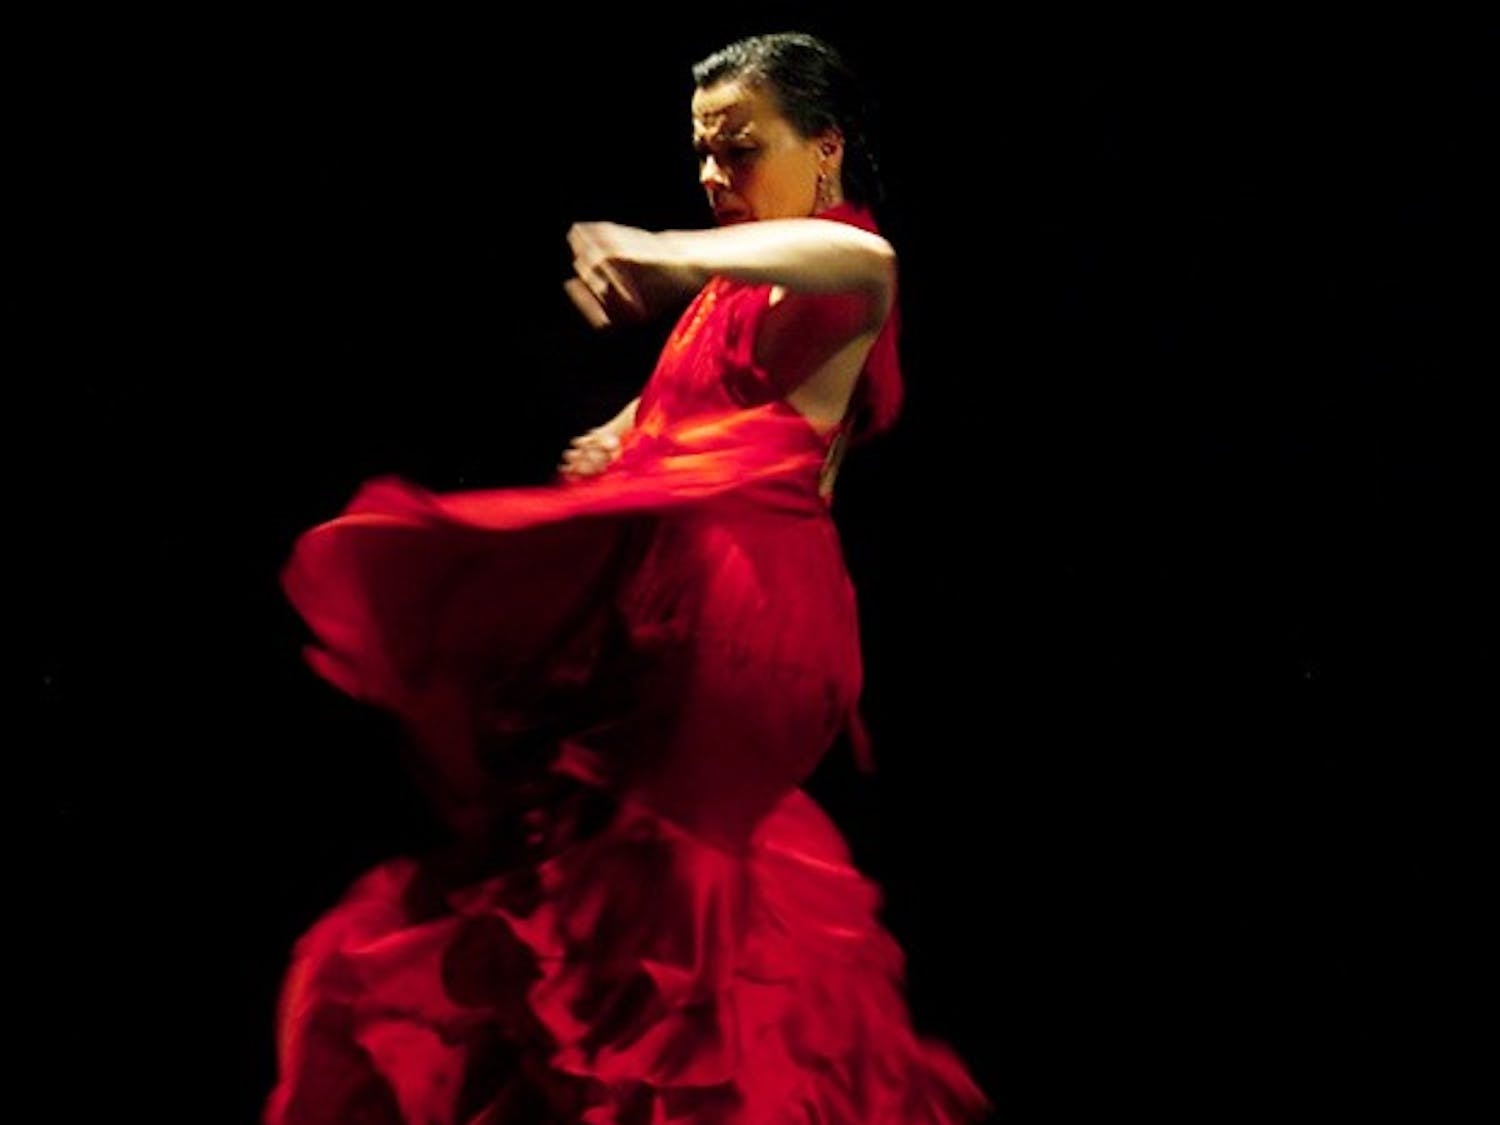 Noche Flamenca, a group of dancers, singers and instrumentalists, will perform a sold-out show at Memorial Hall tonight.